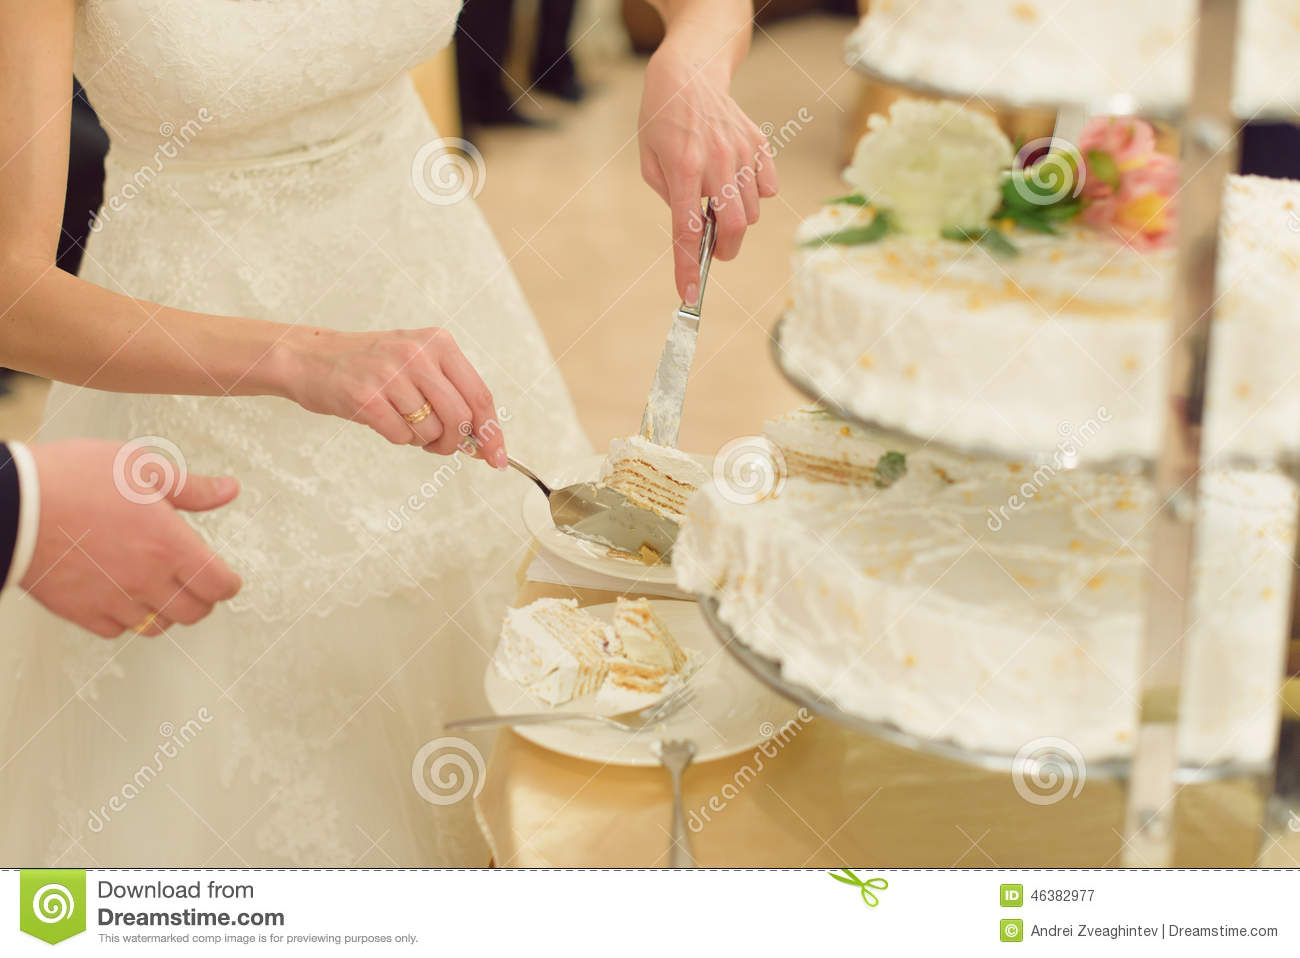 wedding cake slice slice of wedding cake stock image image of dress dinner 24903